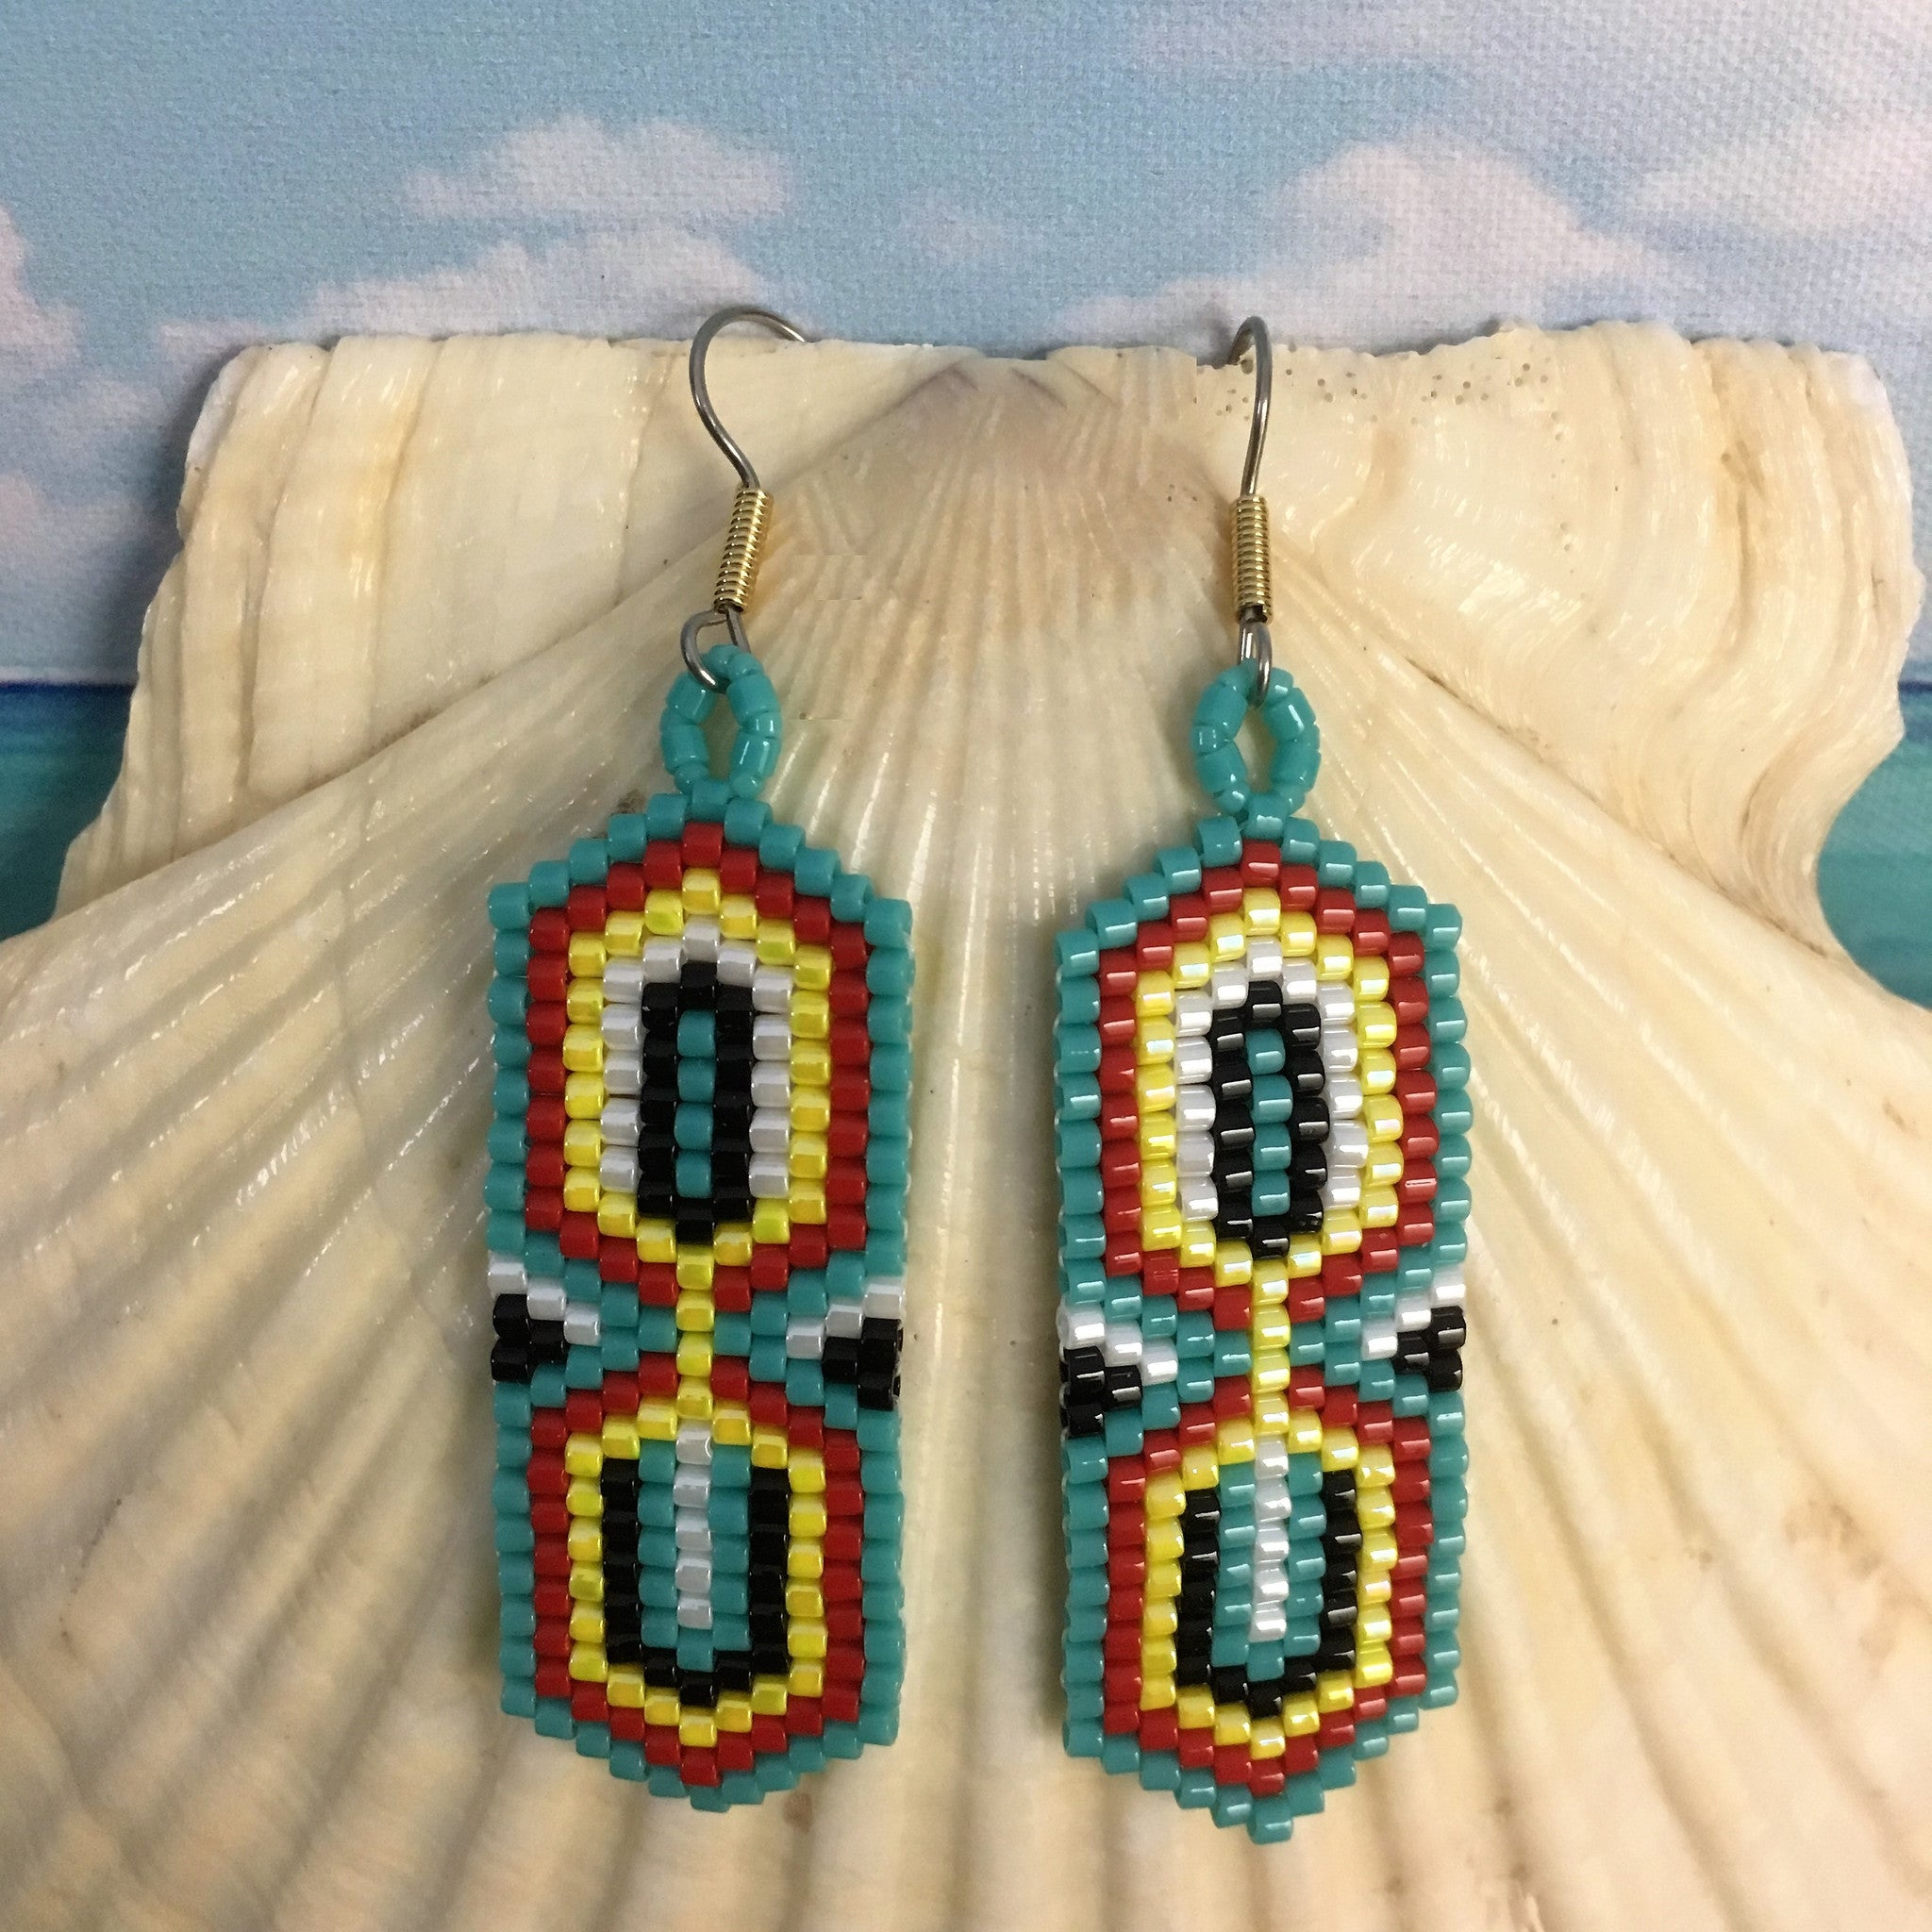 Boho Mid Century modern hourglass shape earrings handmade beaded earrings turquoise red yellow white lightweight original design beaded by the beach